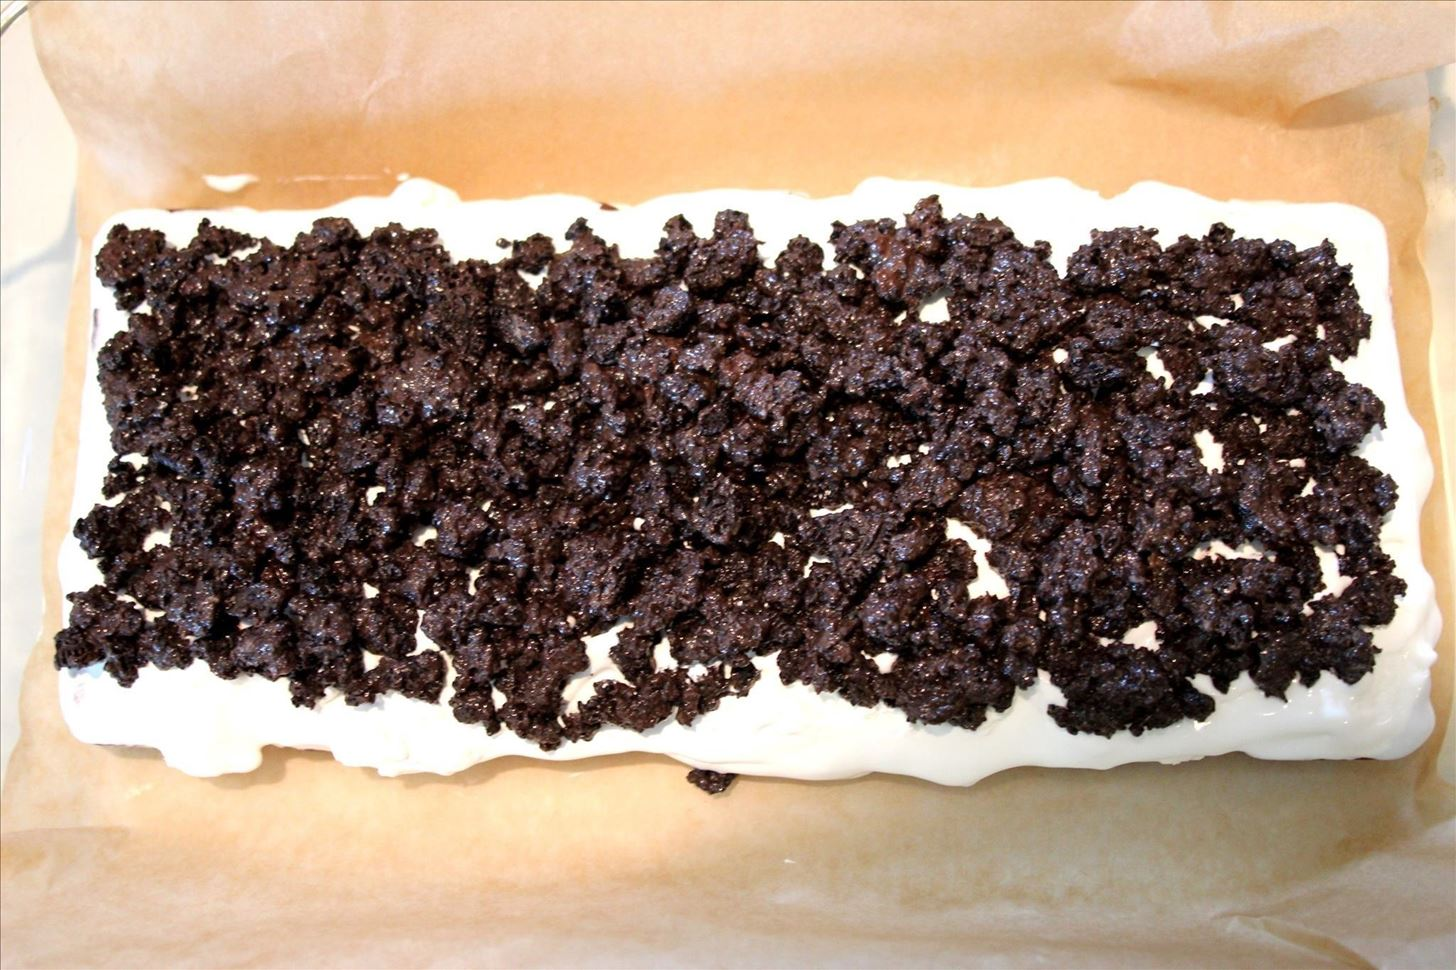 How to Make a No-Bake Ice Cream Sandwich Cake in 10 Minutes